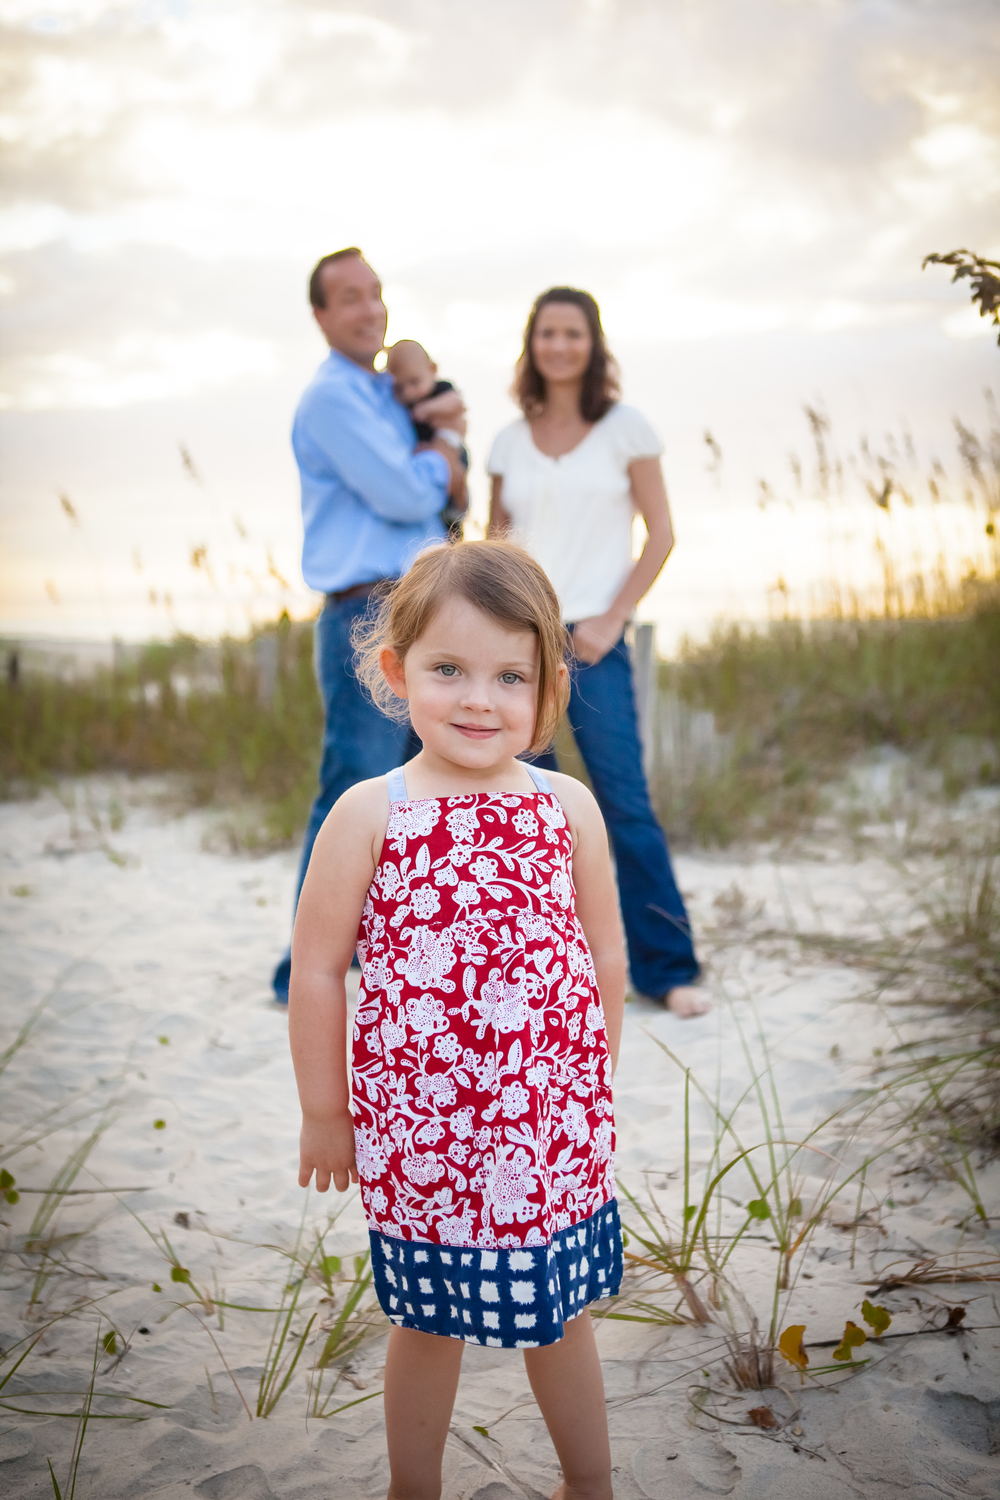 Reale-Copithorne Family Session-33.jpg